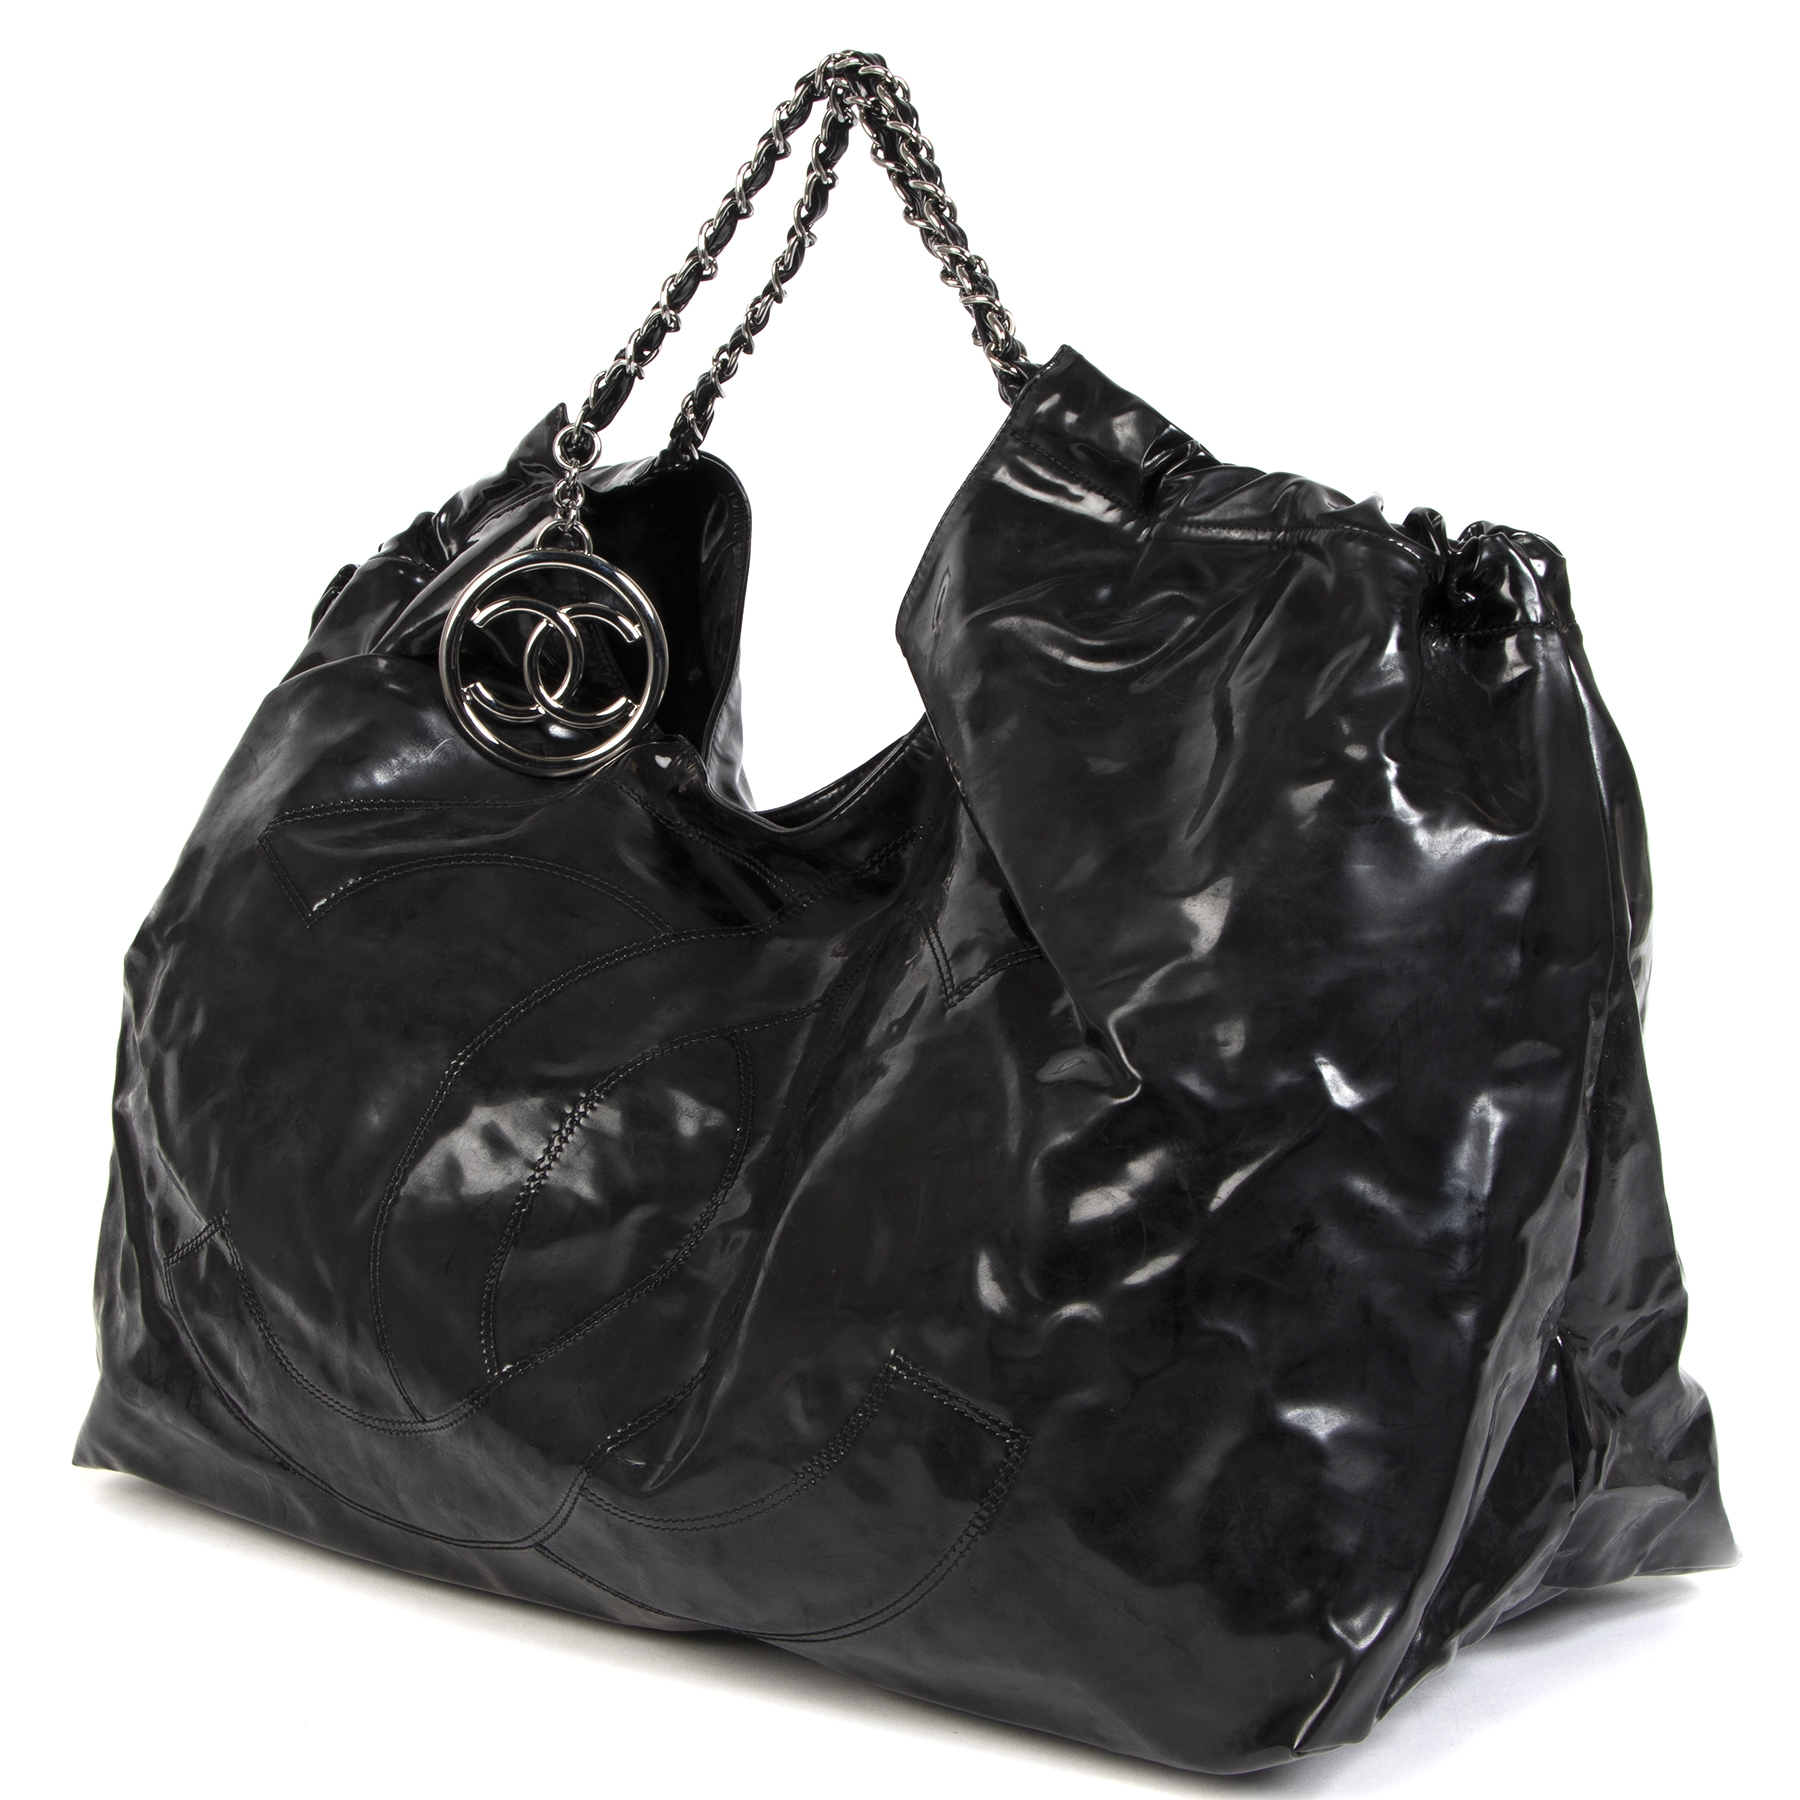 Chanel Black Patent Vinyl Coco Cabas XL Bag for the best price at Labellov